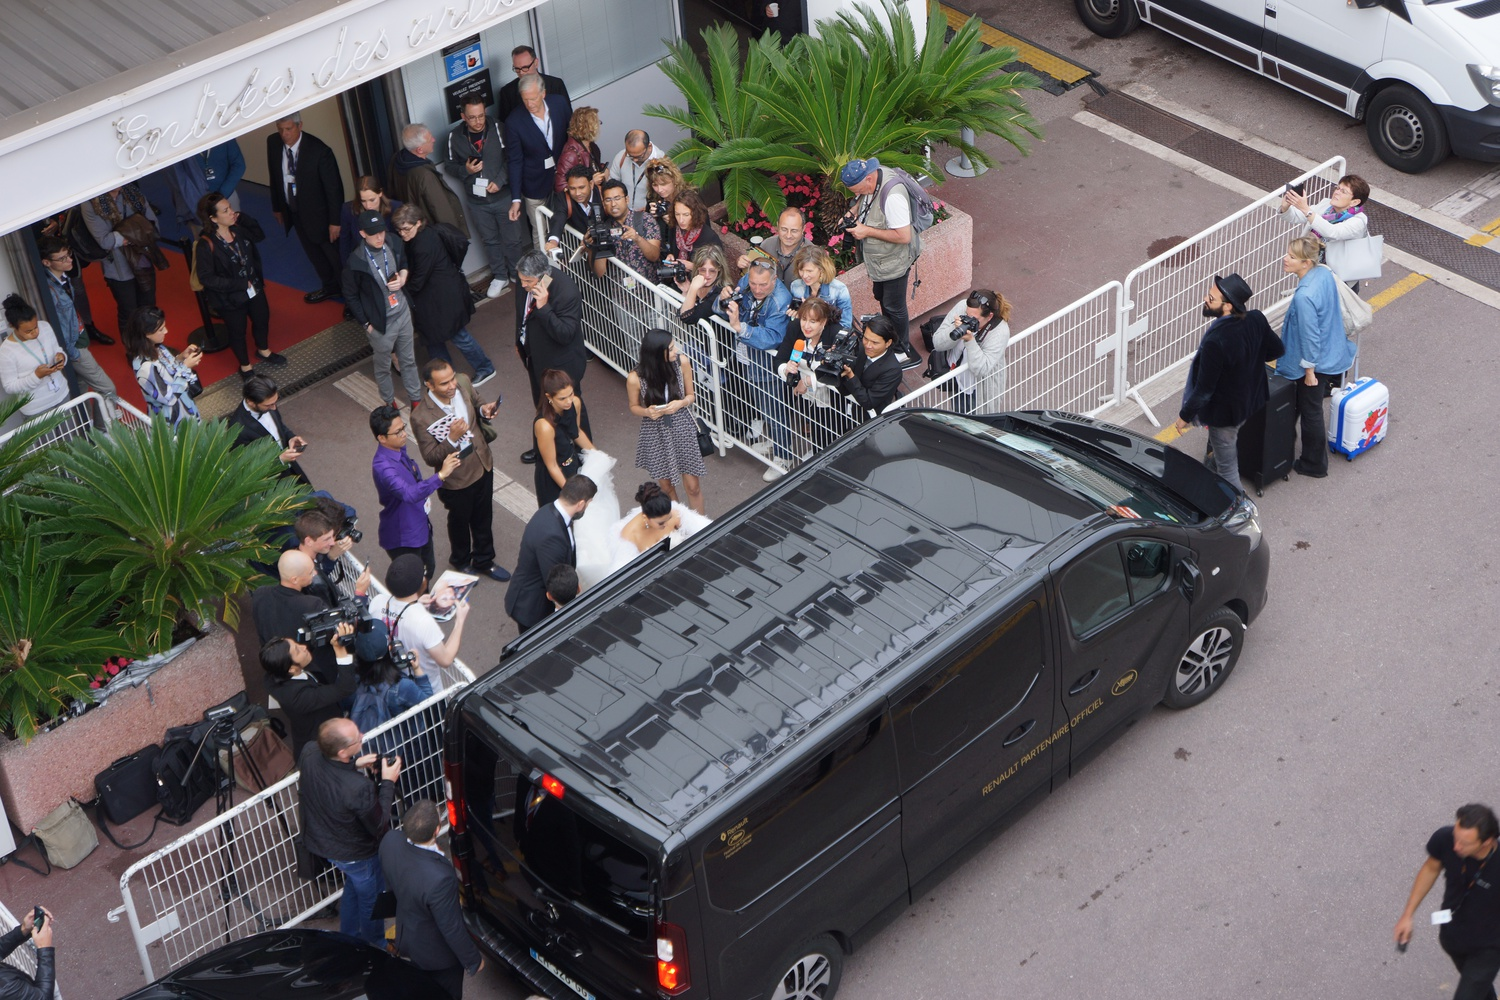 Outside the Artists' Entrance at the Palais de Festivals in Cannes.